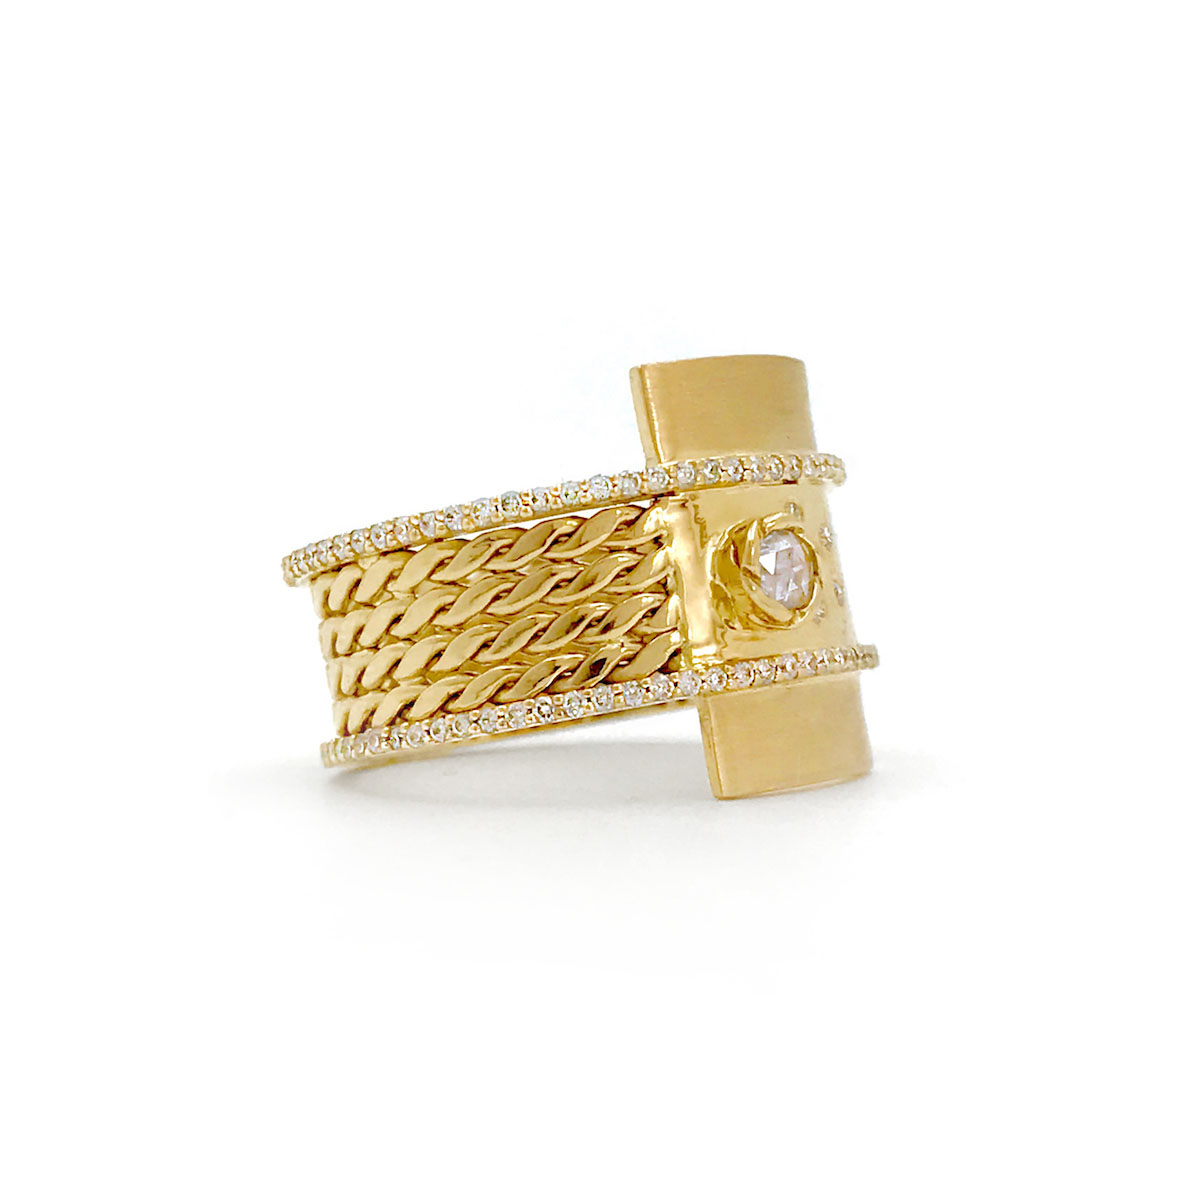 Moon-Star-18k-Gold-Textured-Twist-Mesh-Double-Pave-Diamond-Belt-Shield-Statement-Ring-Rpose-Cut-Center-Stone-EFCR-04